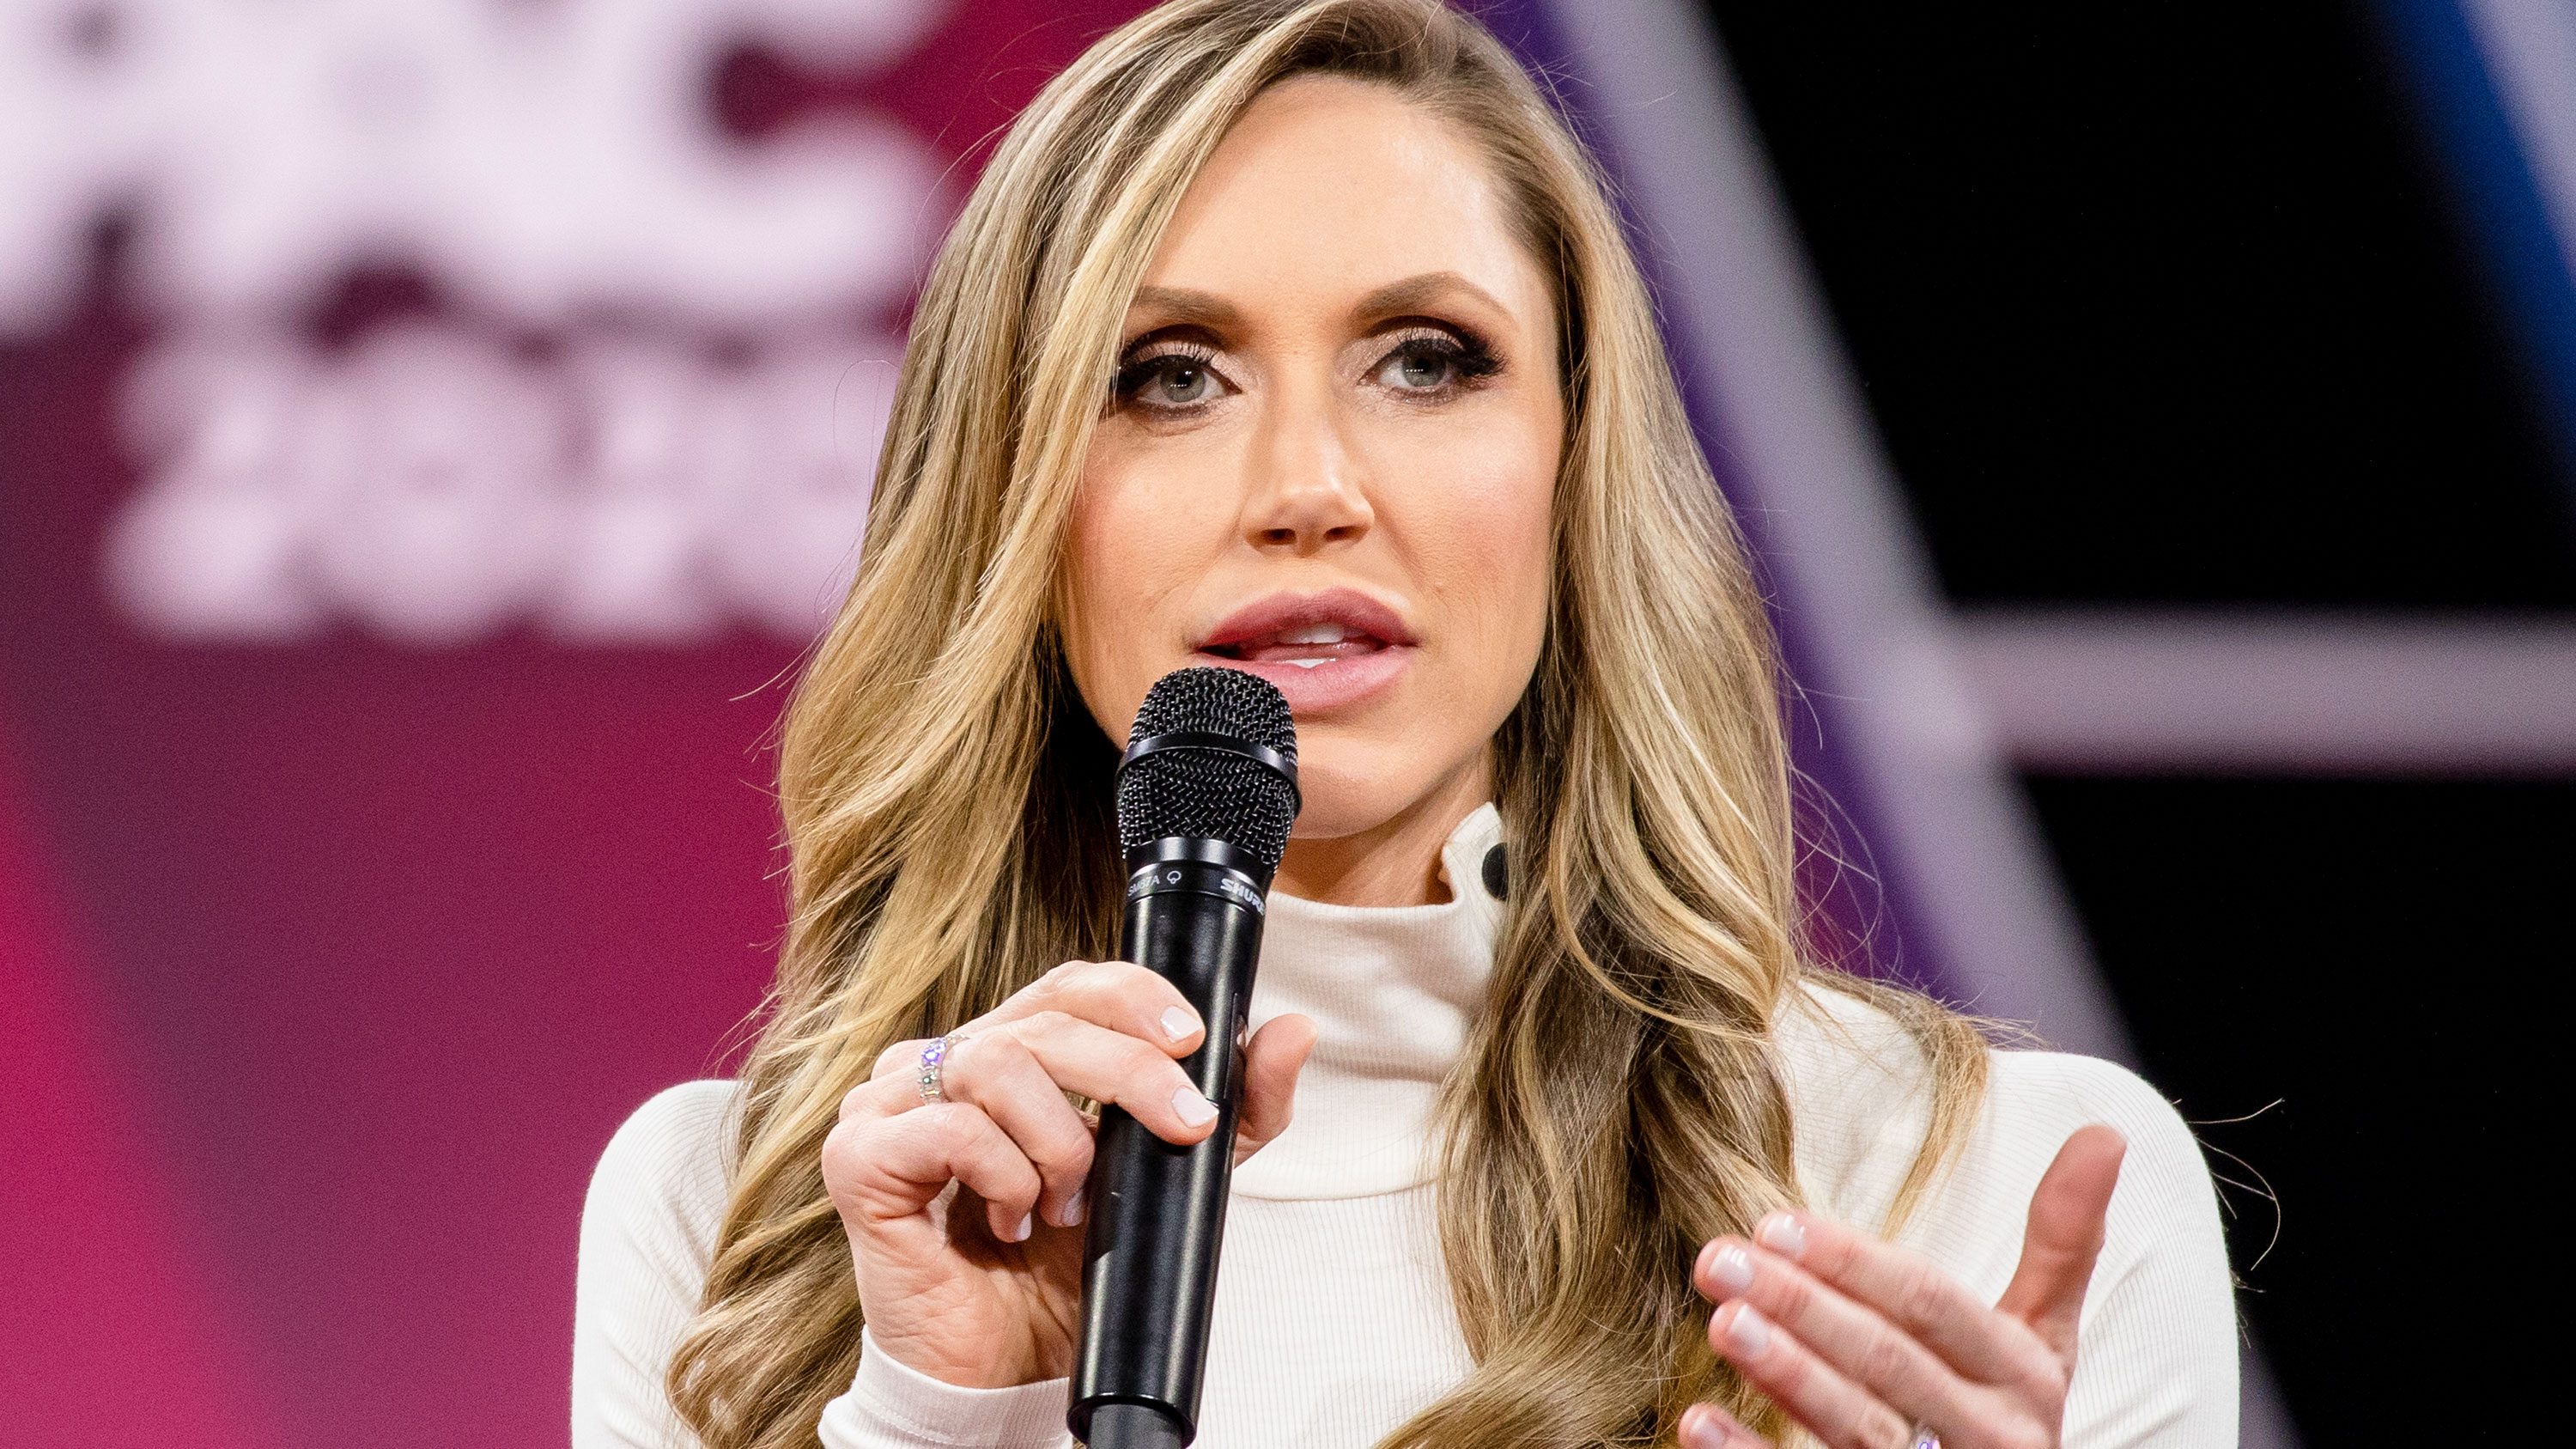 Lara Trump-RNC robocall called mail-in voting safe and secure while President railed against it